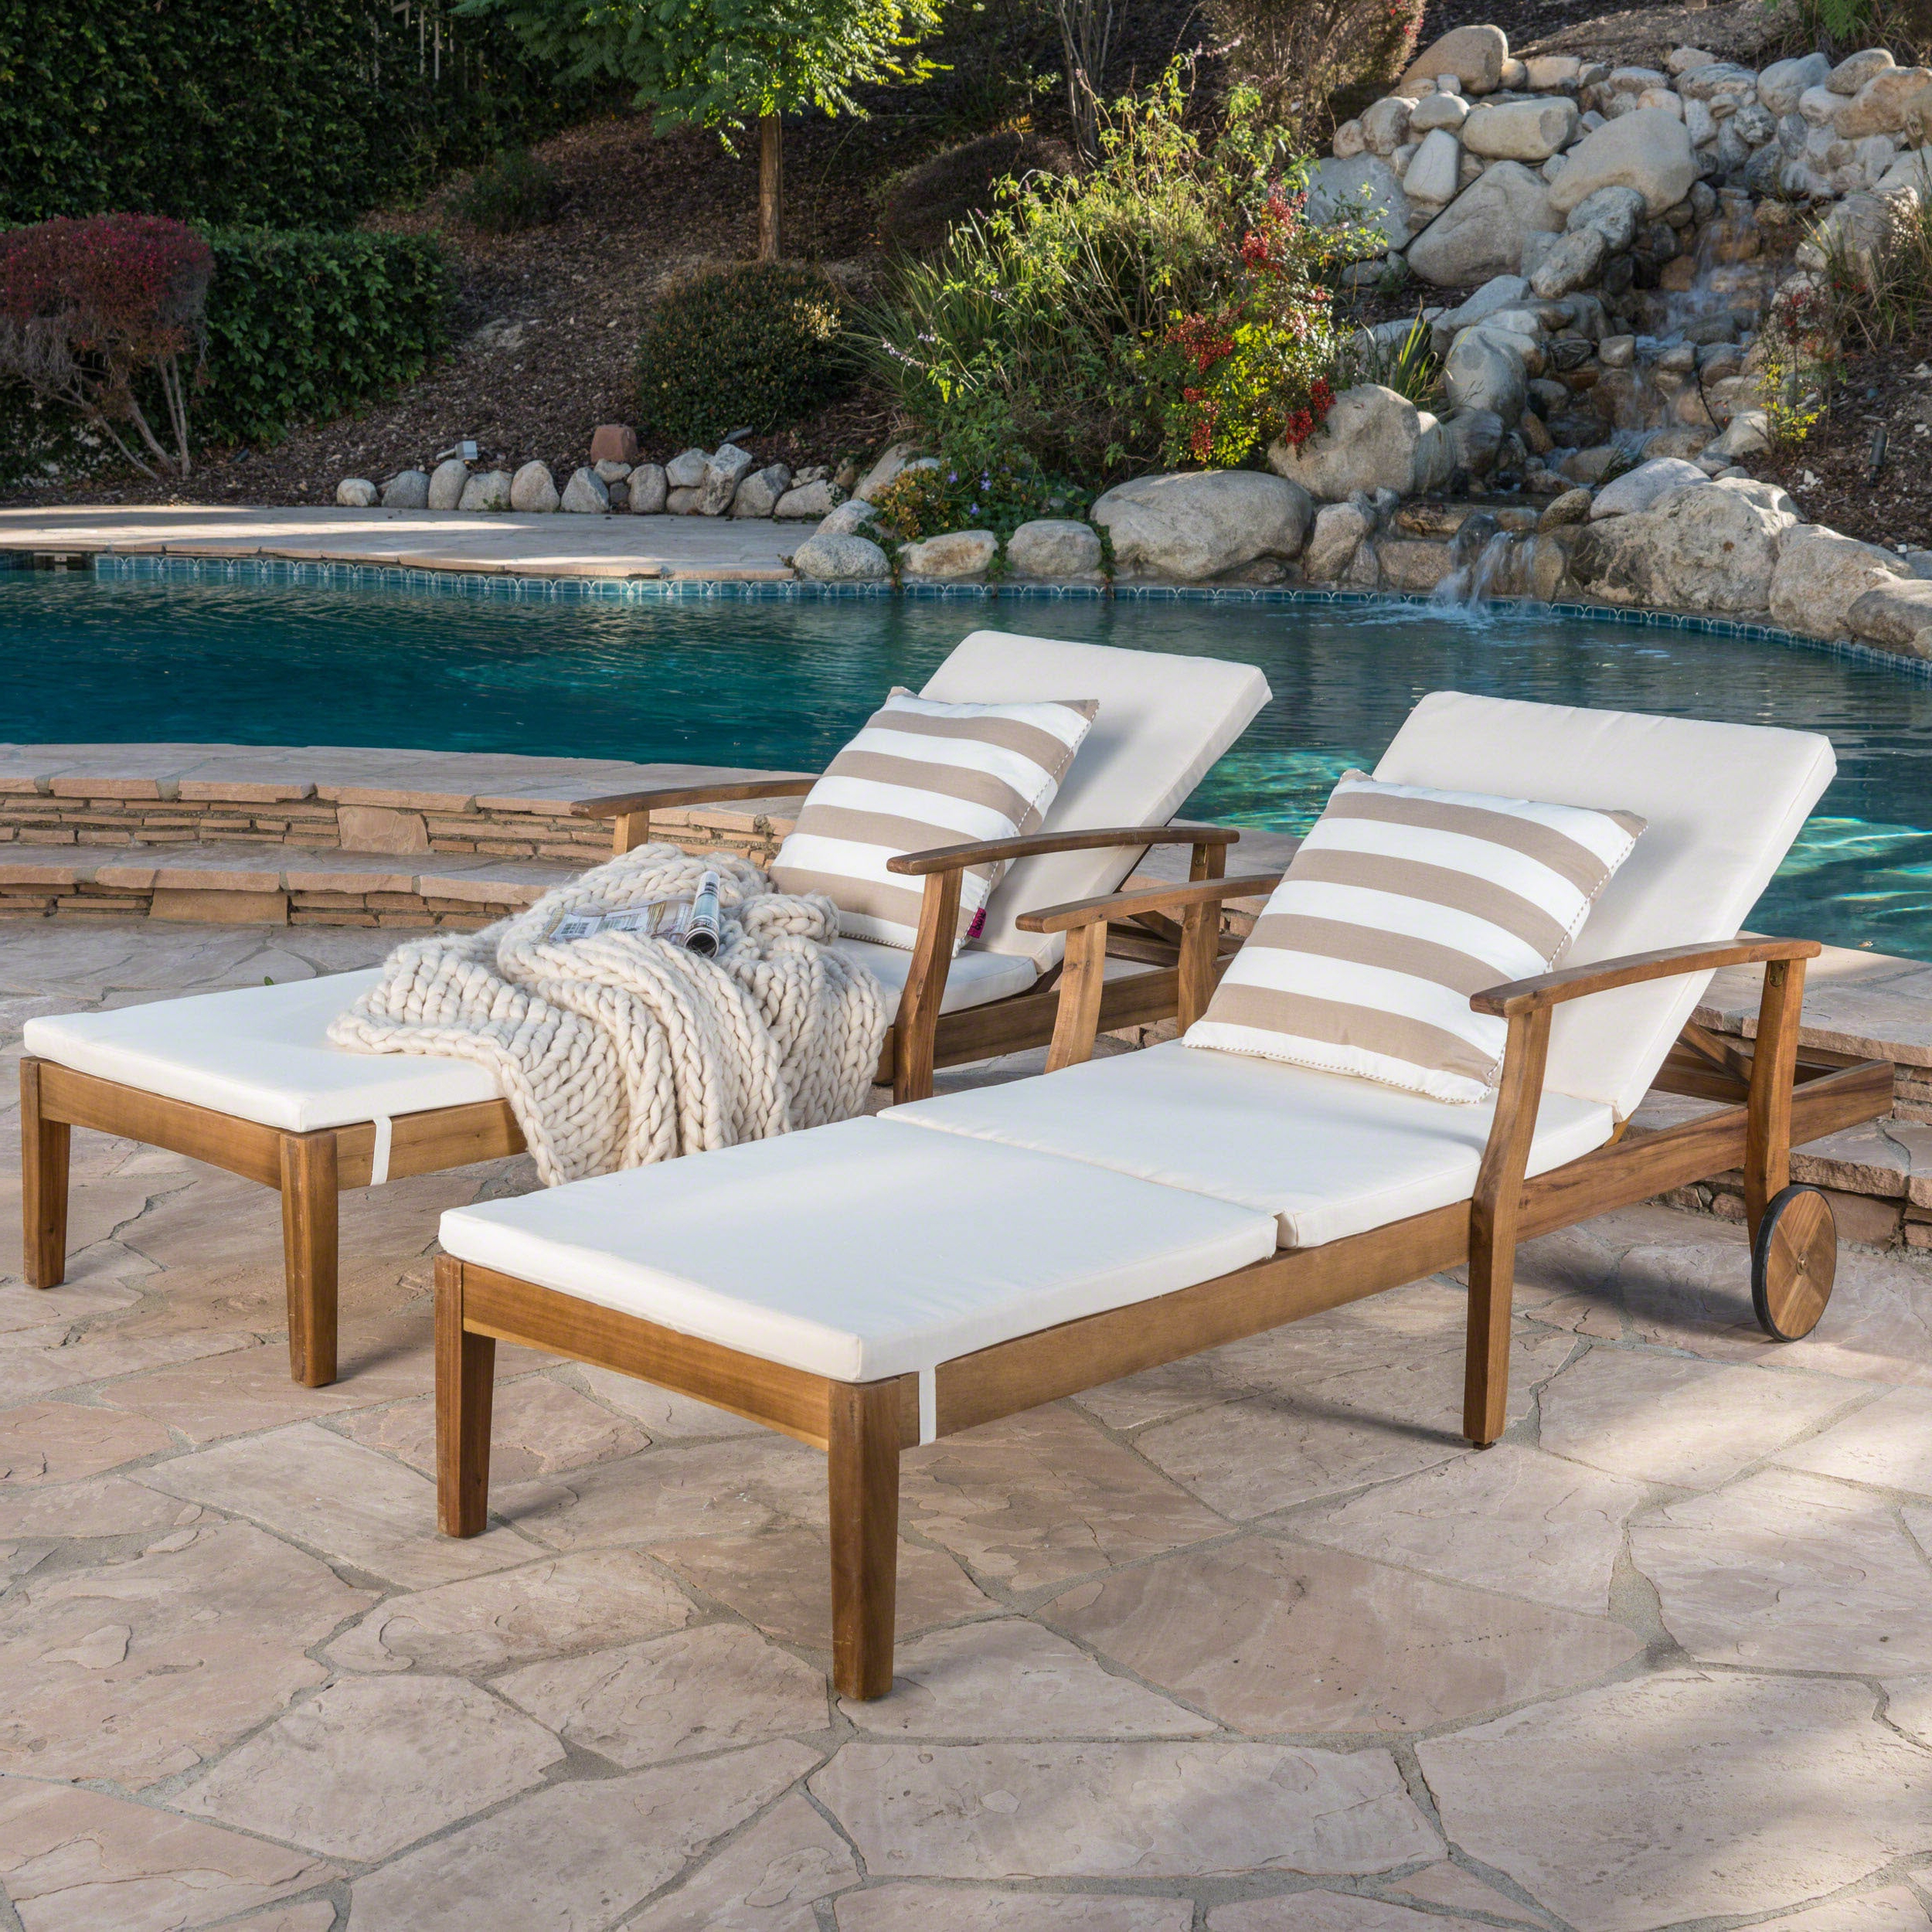 2020 Perla Outdoor Acacia Wood Chaise Lounge With Cushion Inside Perla Outdoor Acacia Wood Chaise Lounge With Cushion (set Of 2) Christopher Knight Home (View 1 of 25)